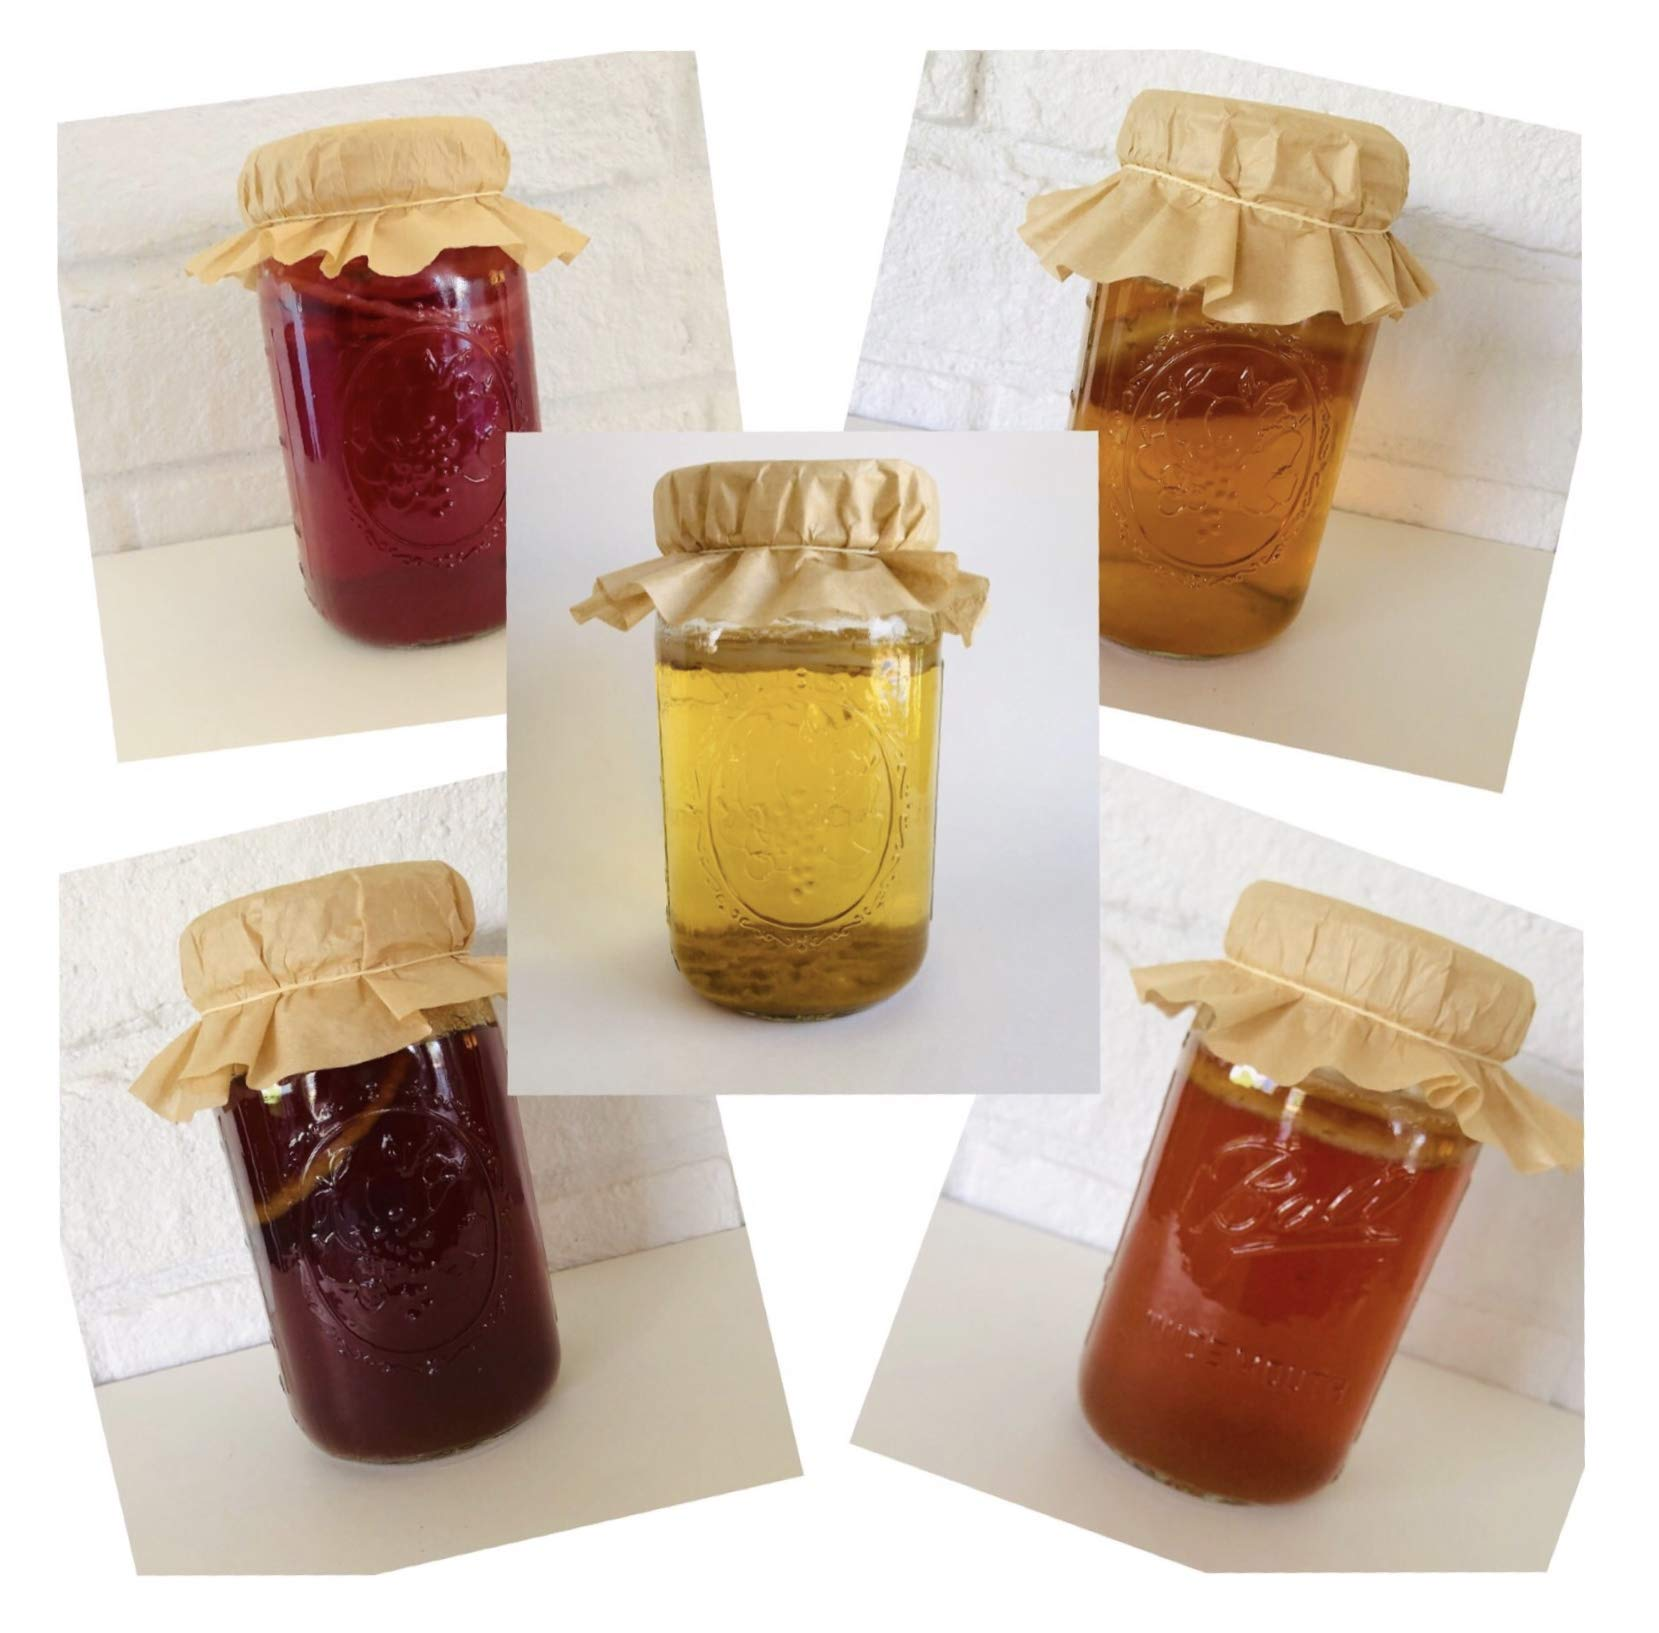 Choose any TWO 1/2 Gallon Size Kombucha SCOBY Or Vinegar Mother